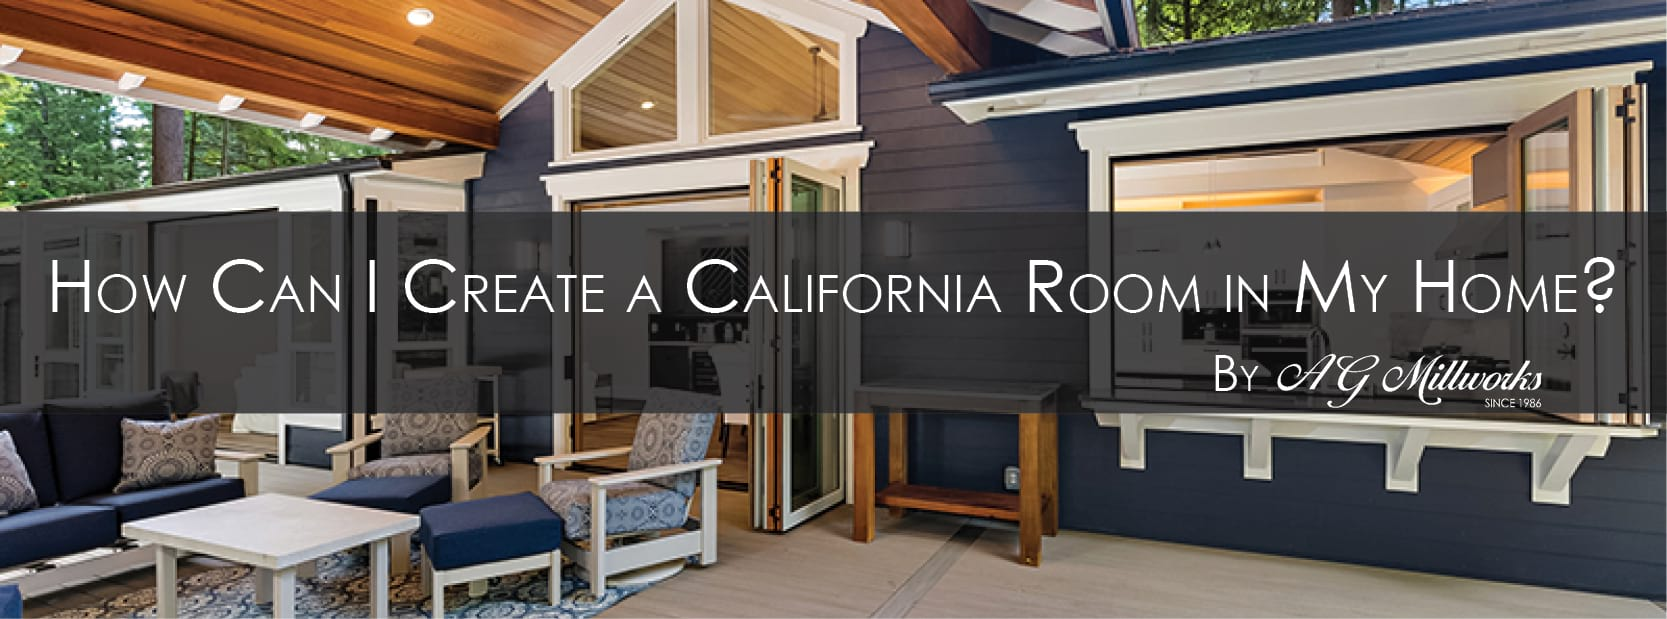 How Can I Create A California Room In My Home